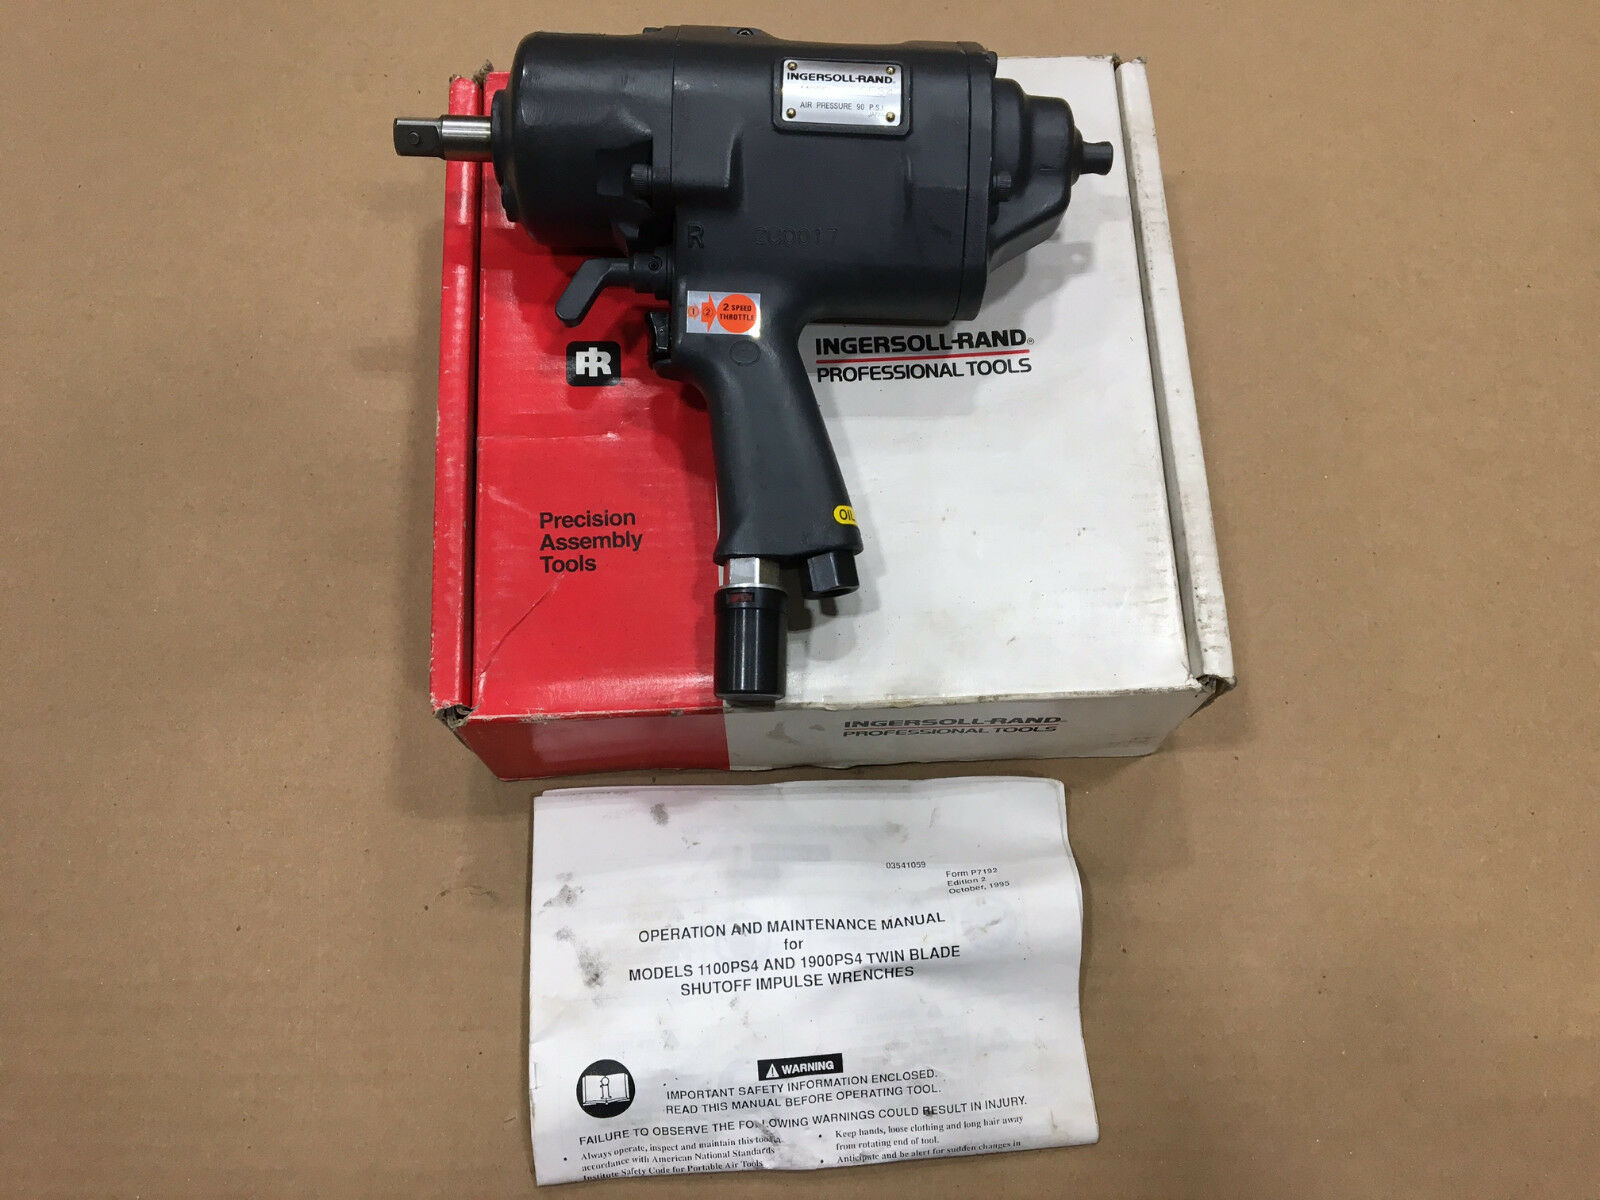 Ingersoll Rand Pneumatic Pulse Impact Wrench IR-1900PS4